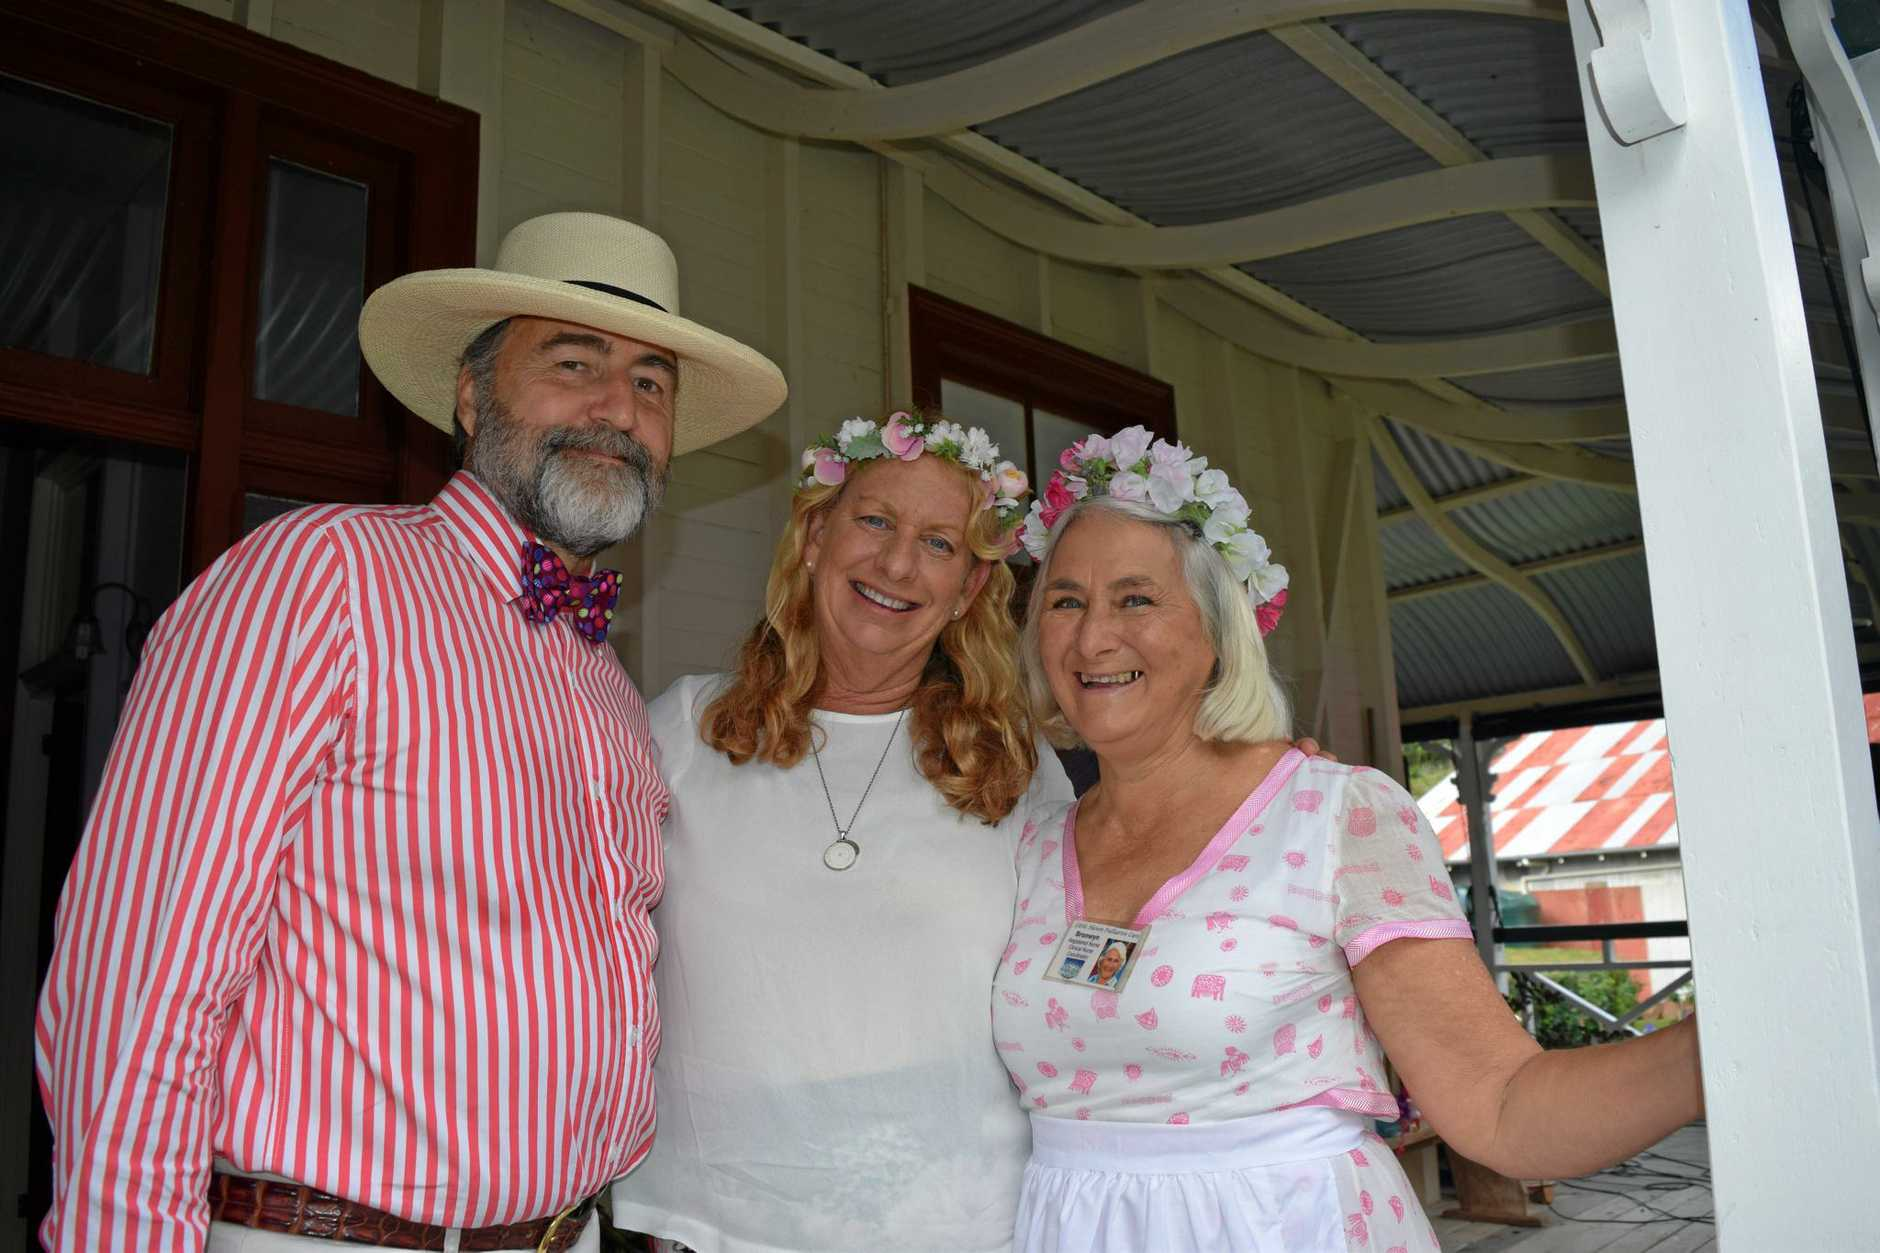 Springtime at Springhalls is always a big social and fundraising event. Event hosts and organisers (from left) George Springhall, Sue Manton, and Bronwyn McFarlane.